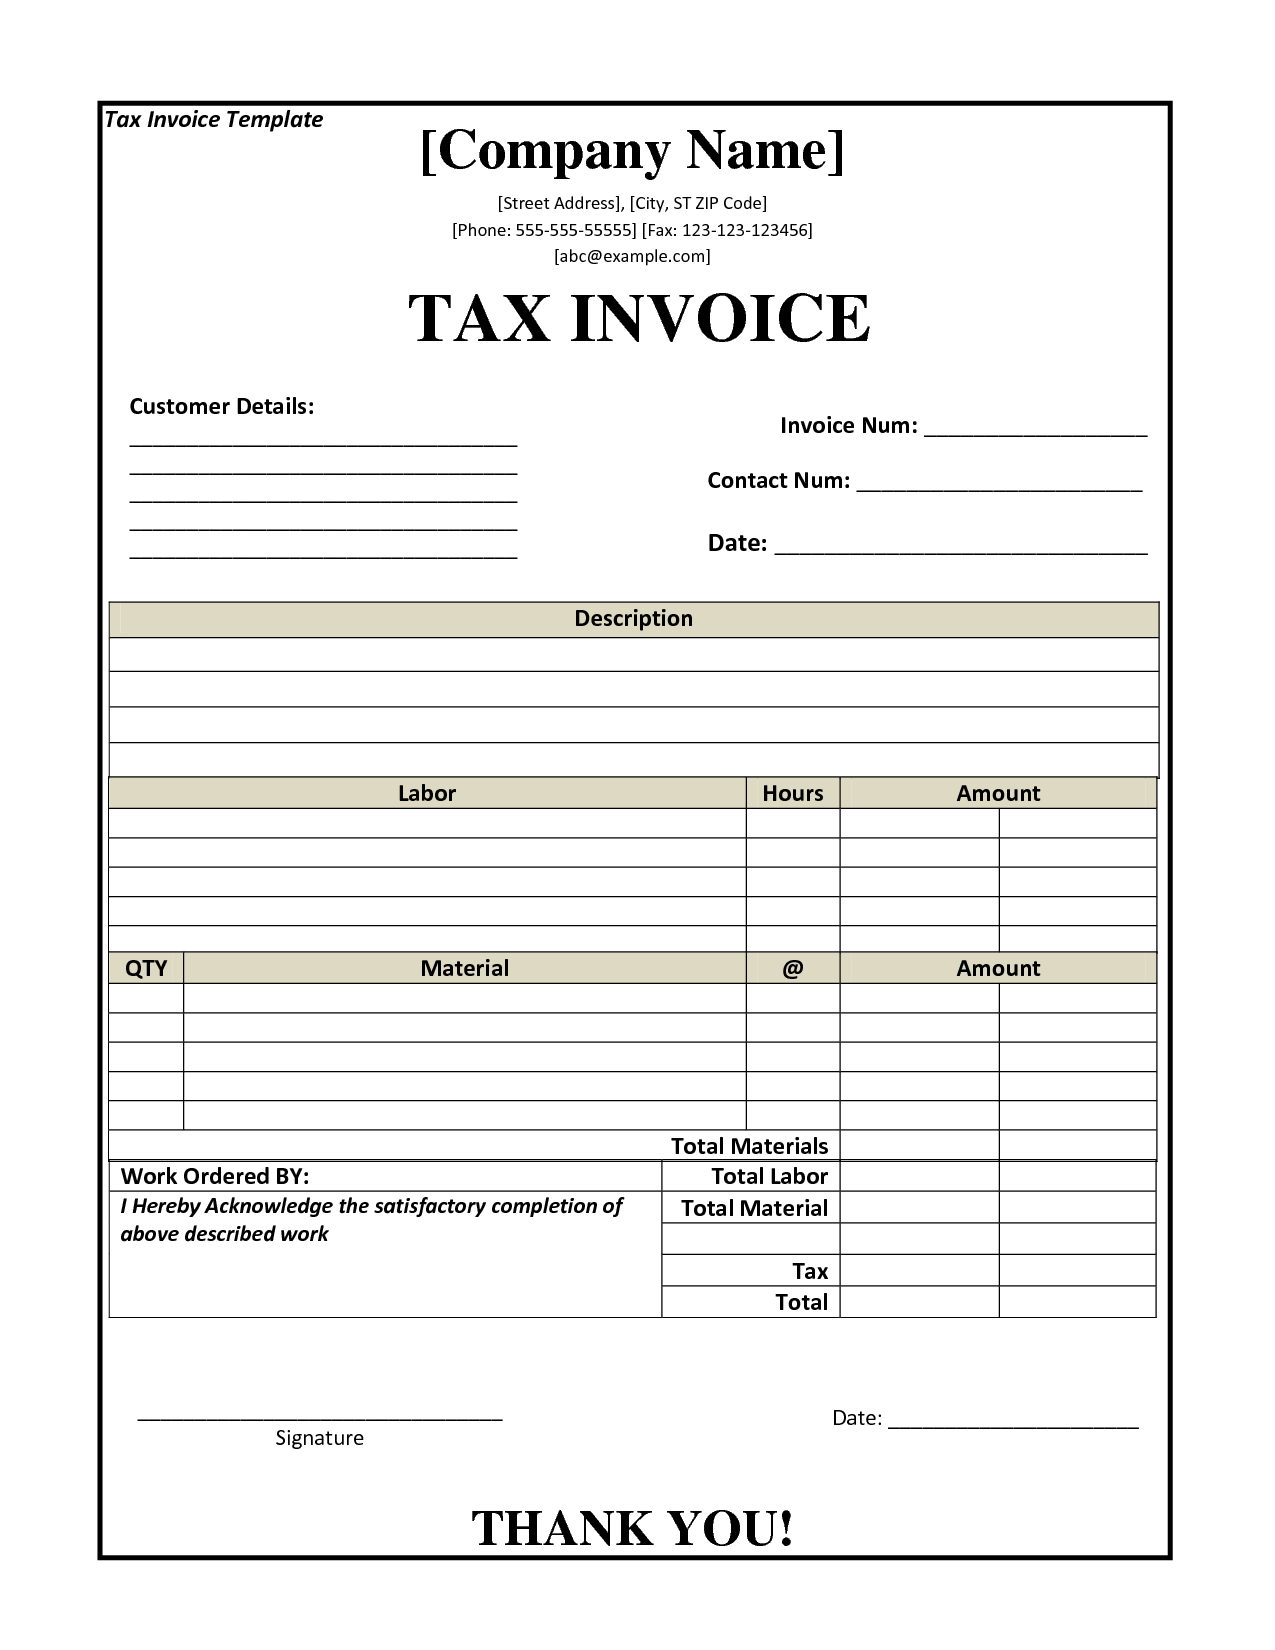 ato tax invoice template – notators, Invoice examples